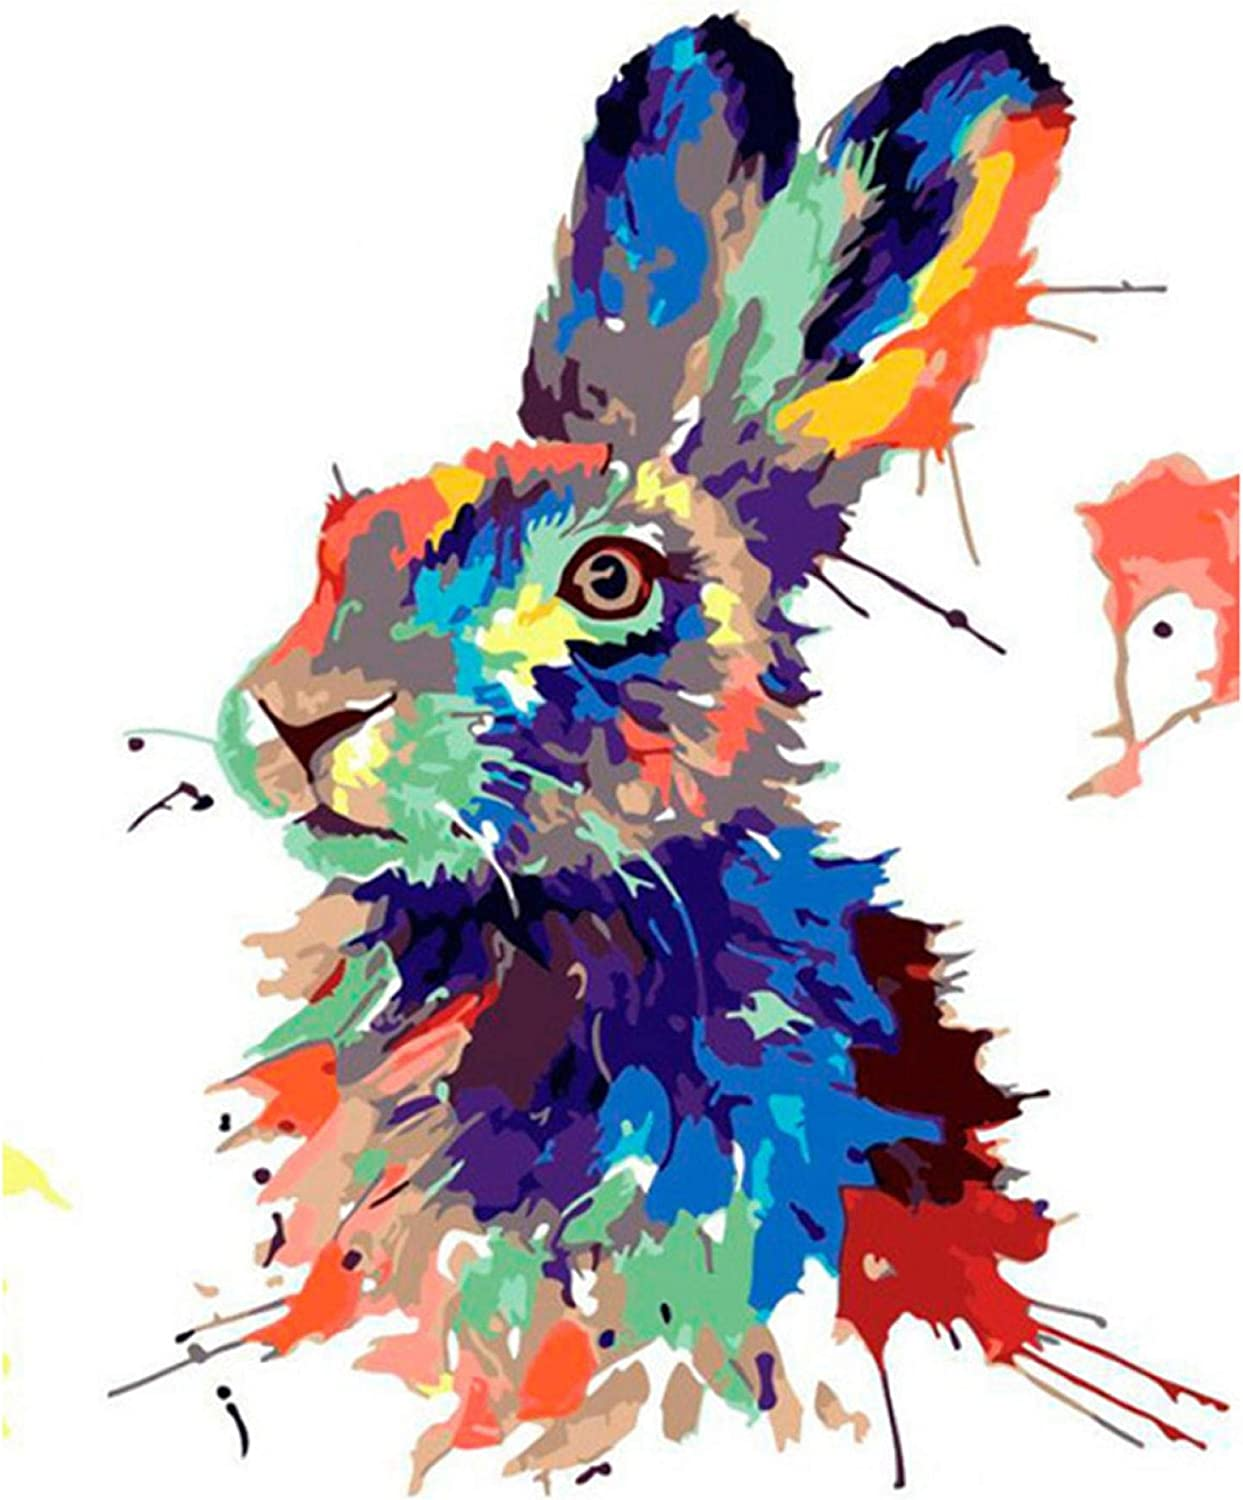 FSKJSZYH Frameless Diy Big Grey Rabbit Painting By Numbers With Acrylic Paint Kits On Canvas Draw For Coloring By Numbers Hand-Painted 40X50Cm